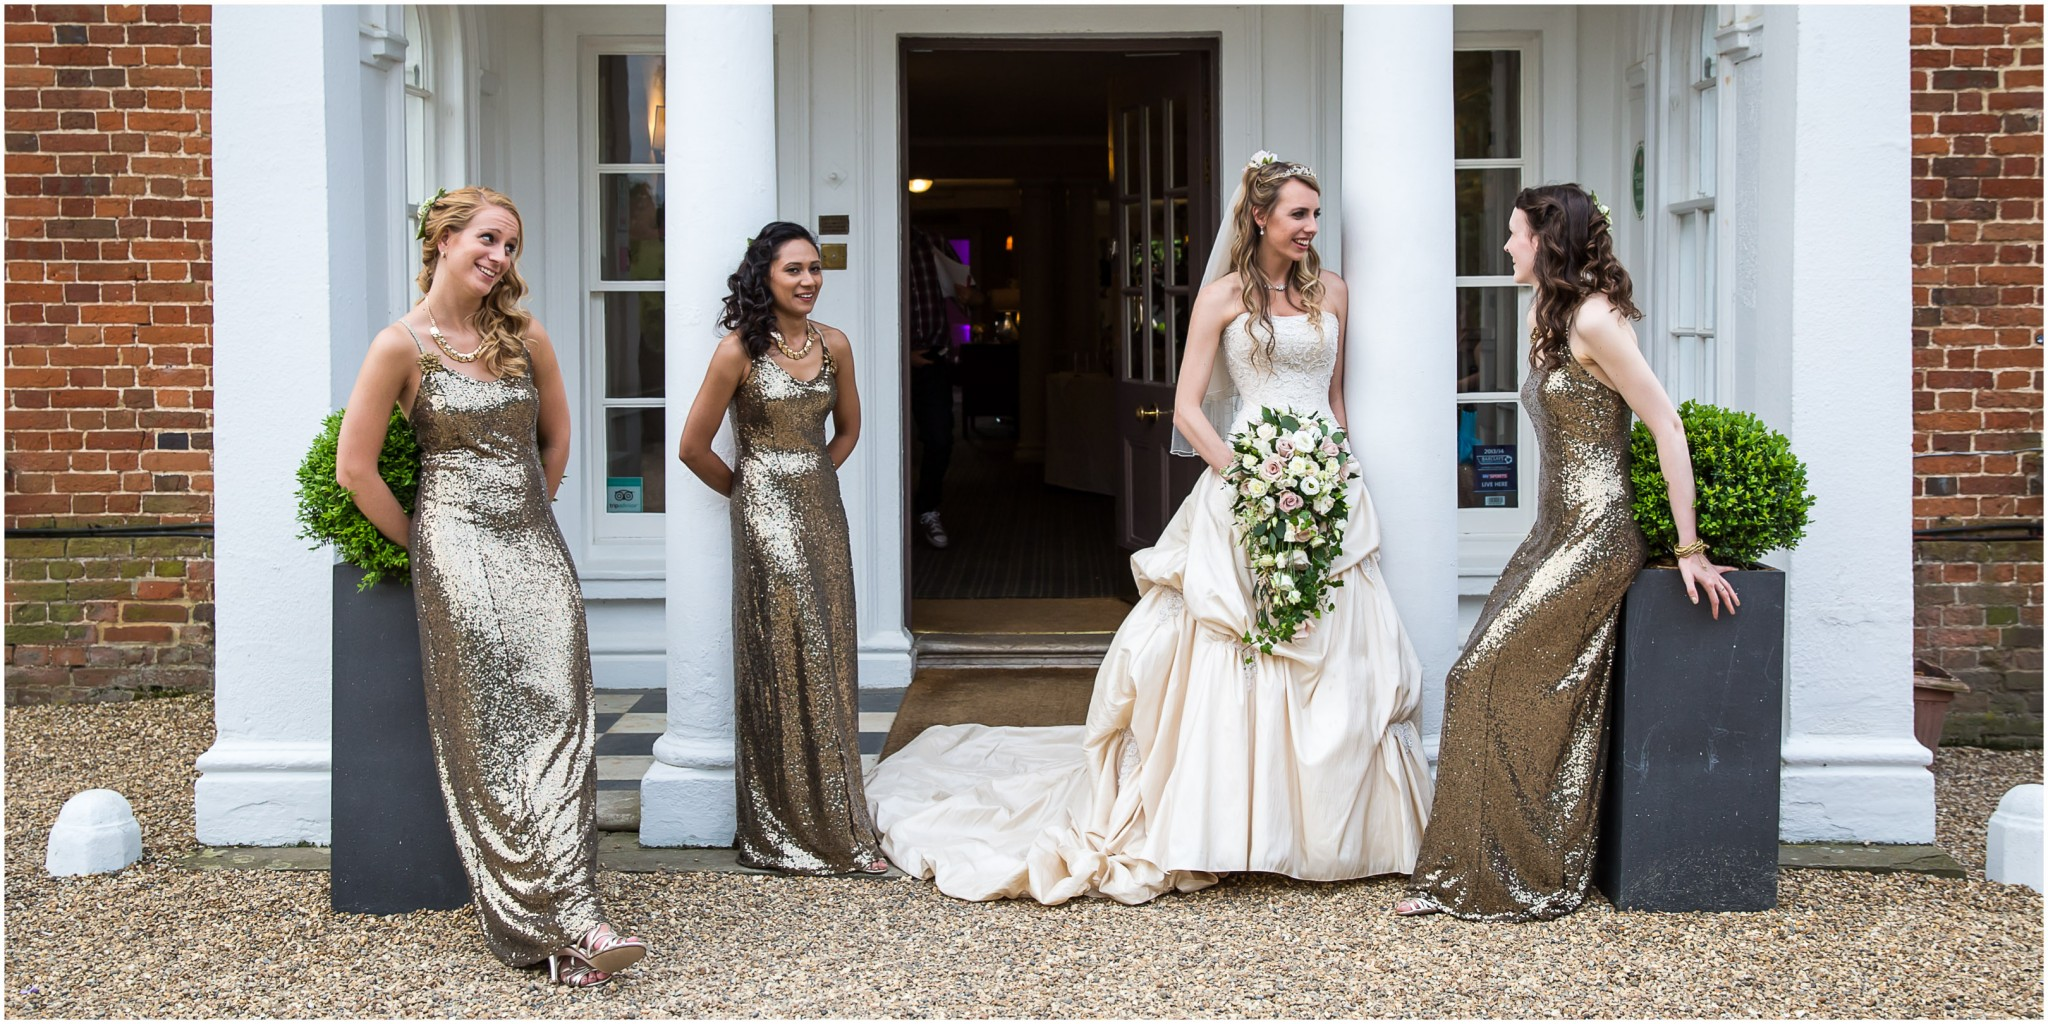 Highfield Park Wedding Photography Bride with Bridesmaids outside entrance to the hotel